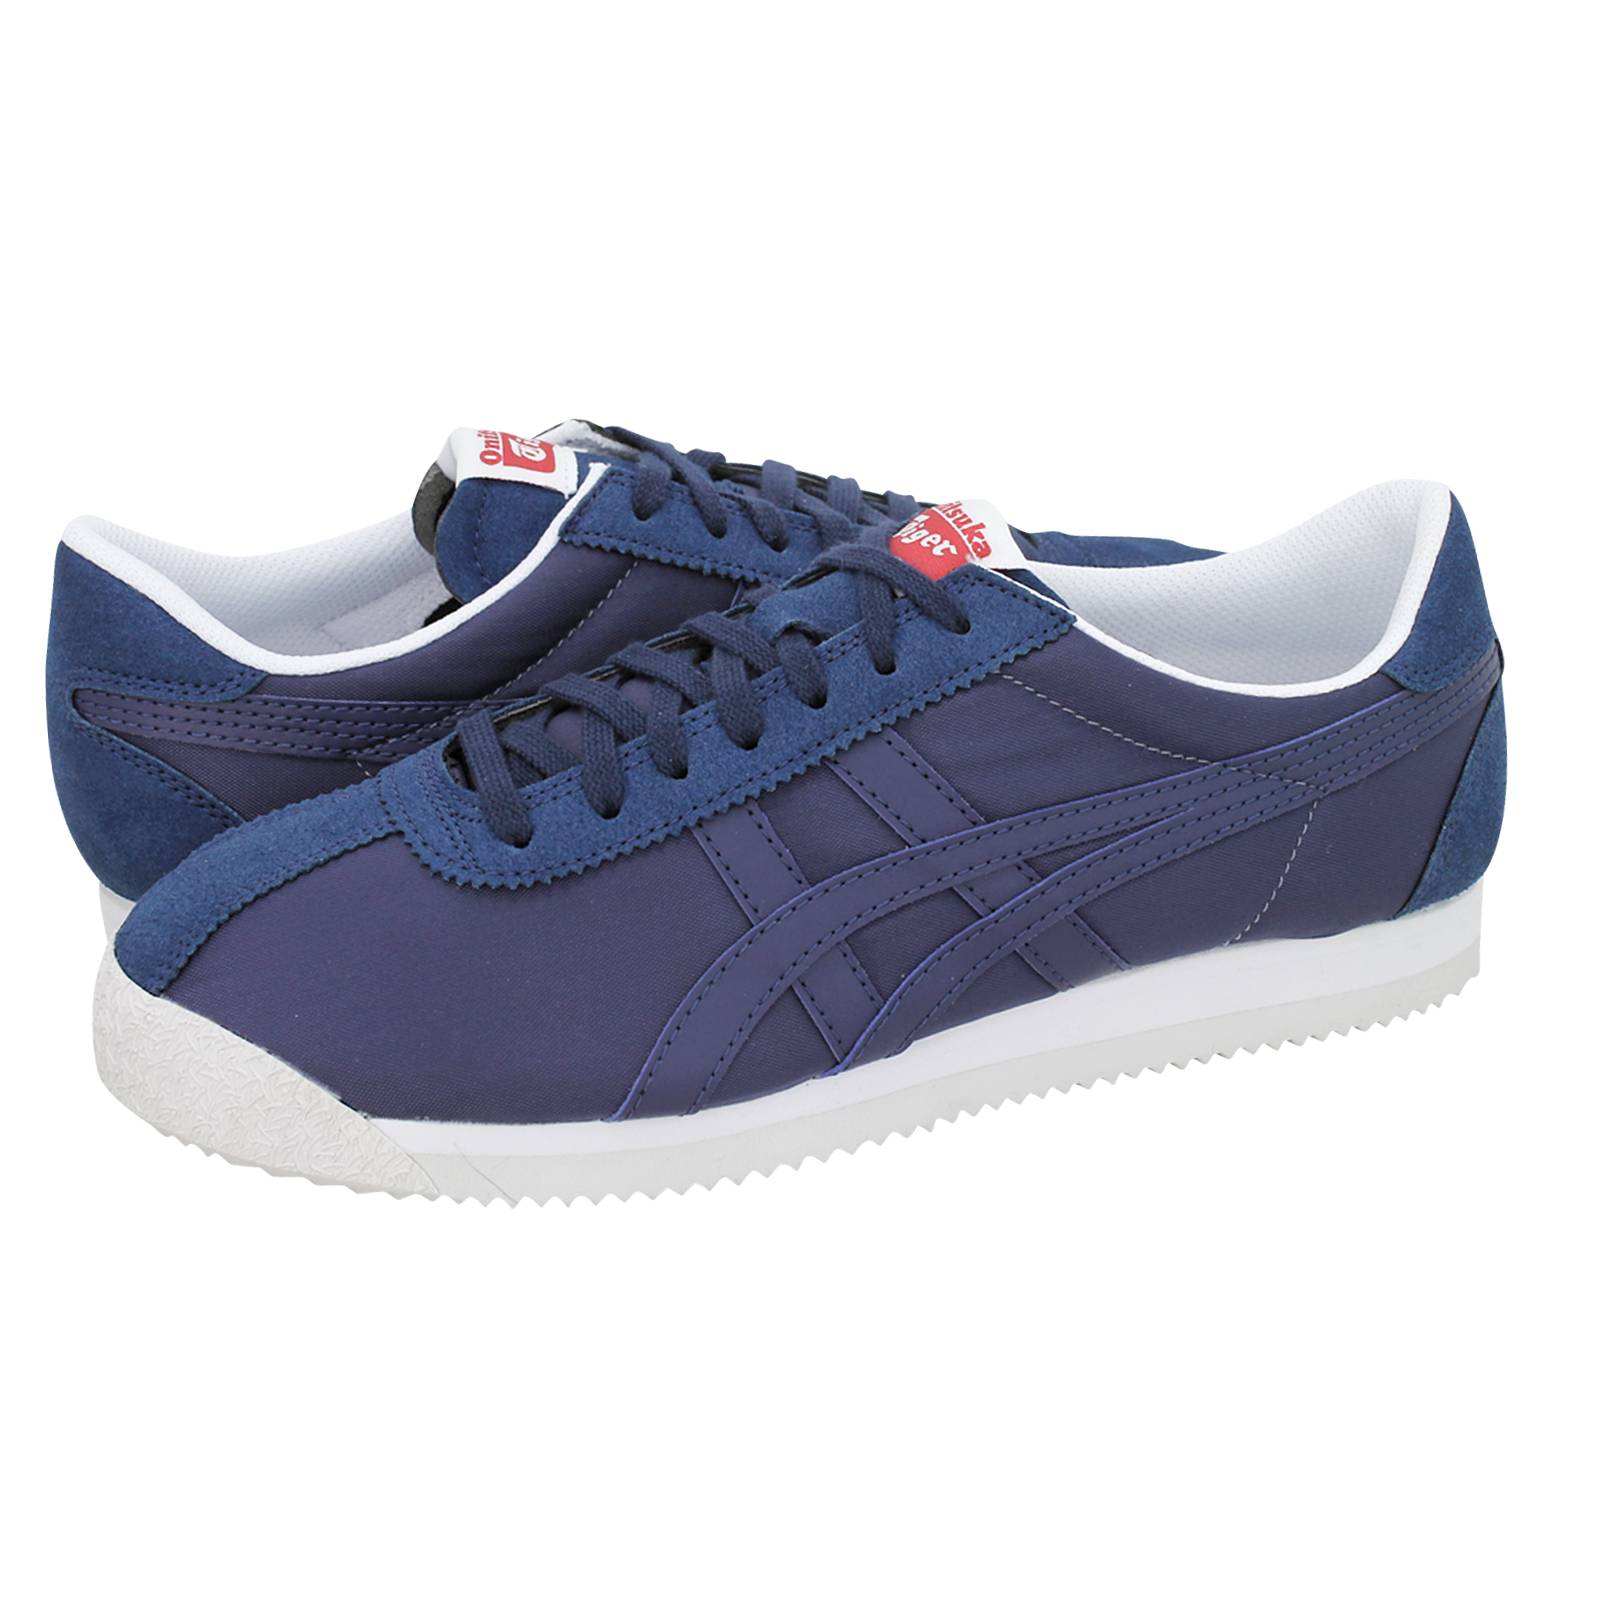 info for f3575 fb873 Onitsuka Tiger Tiger Corsair athletic shoes